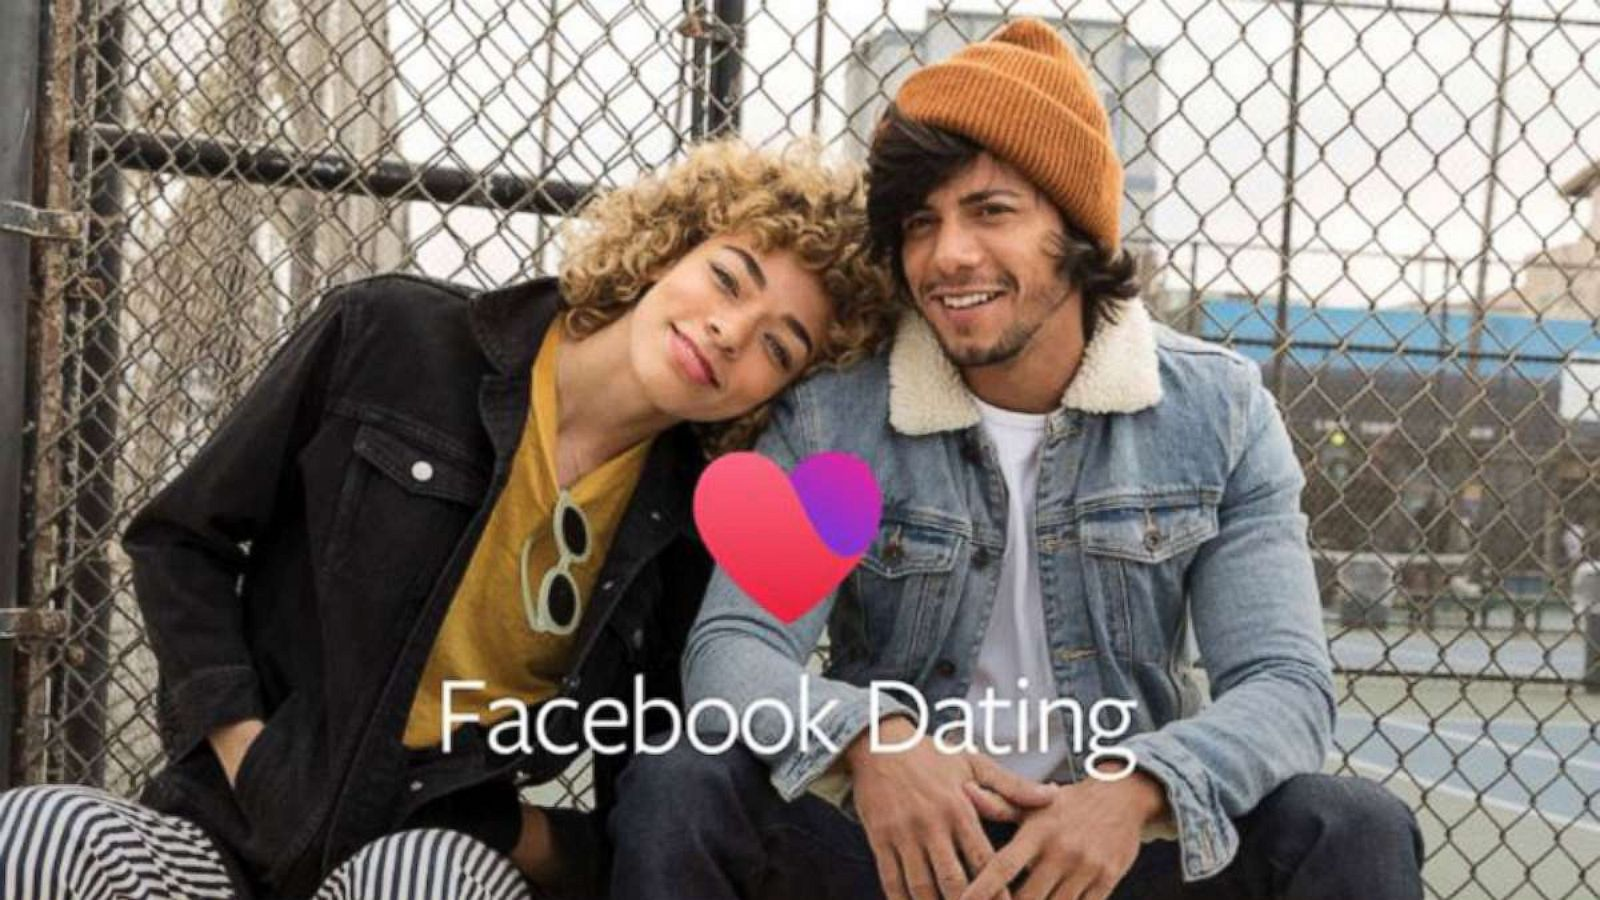 can sex offenders be on online dating sites